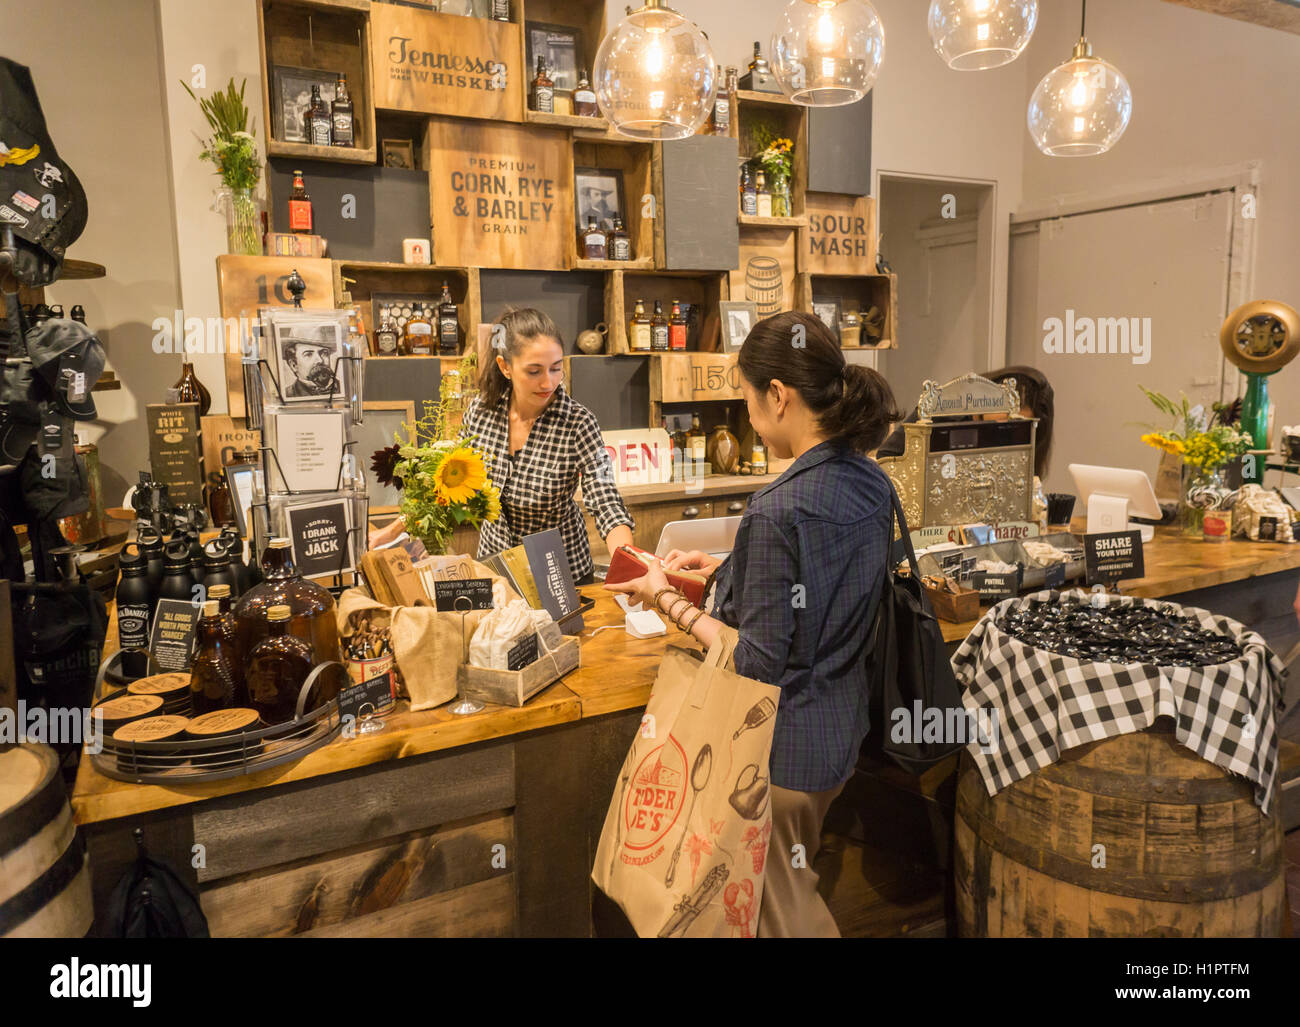 General Store And Tennessee Stock Photos & General Store And ...